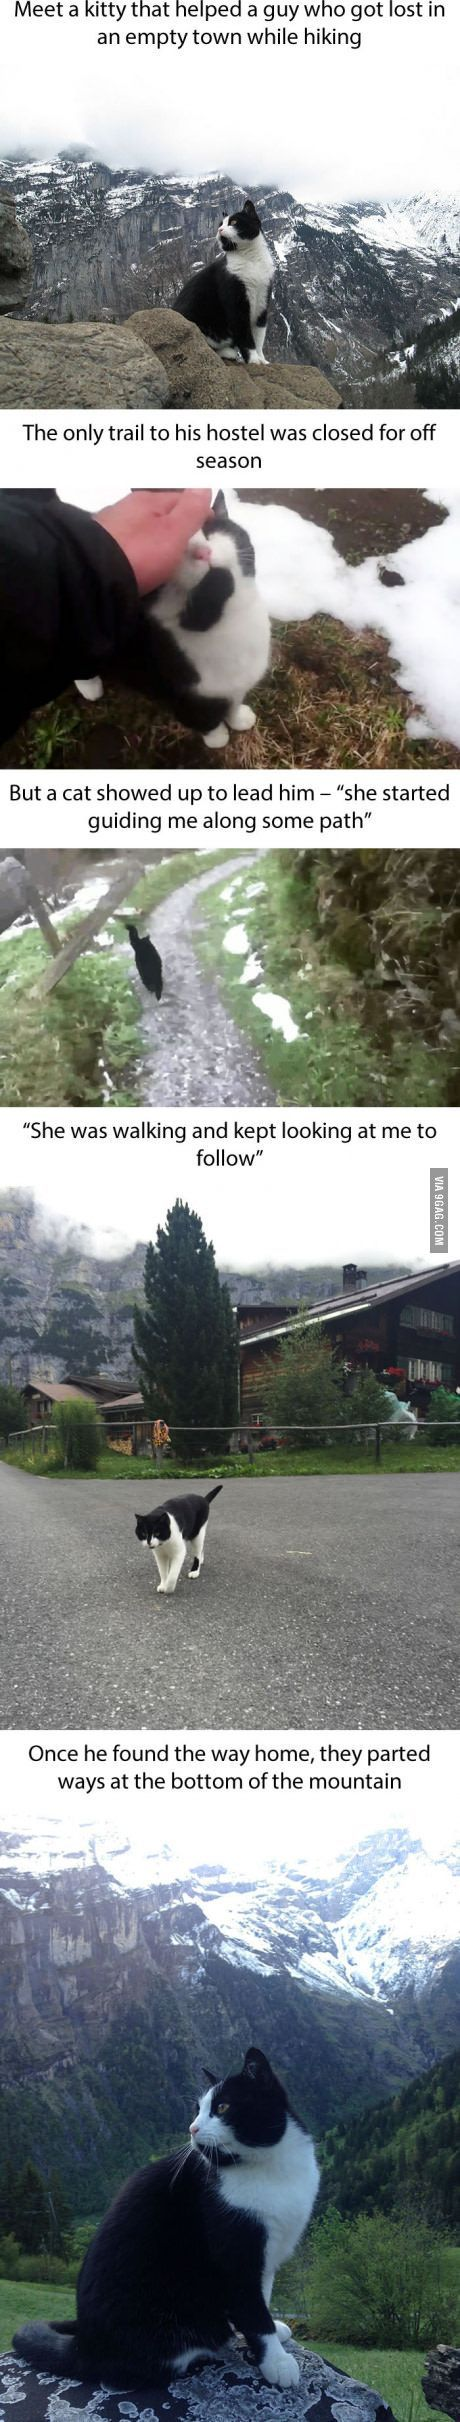 Meet this cat that guides a lost man down the mountain in Switzerland